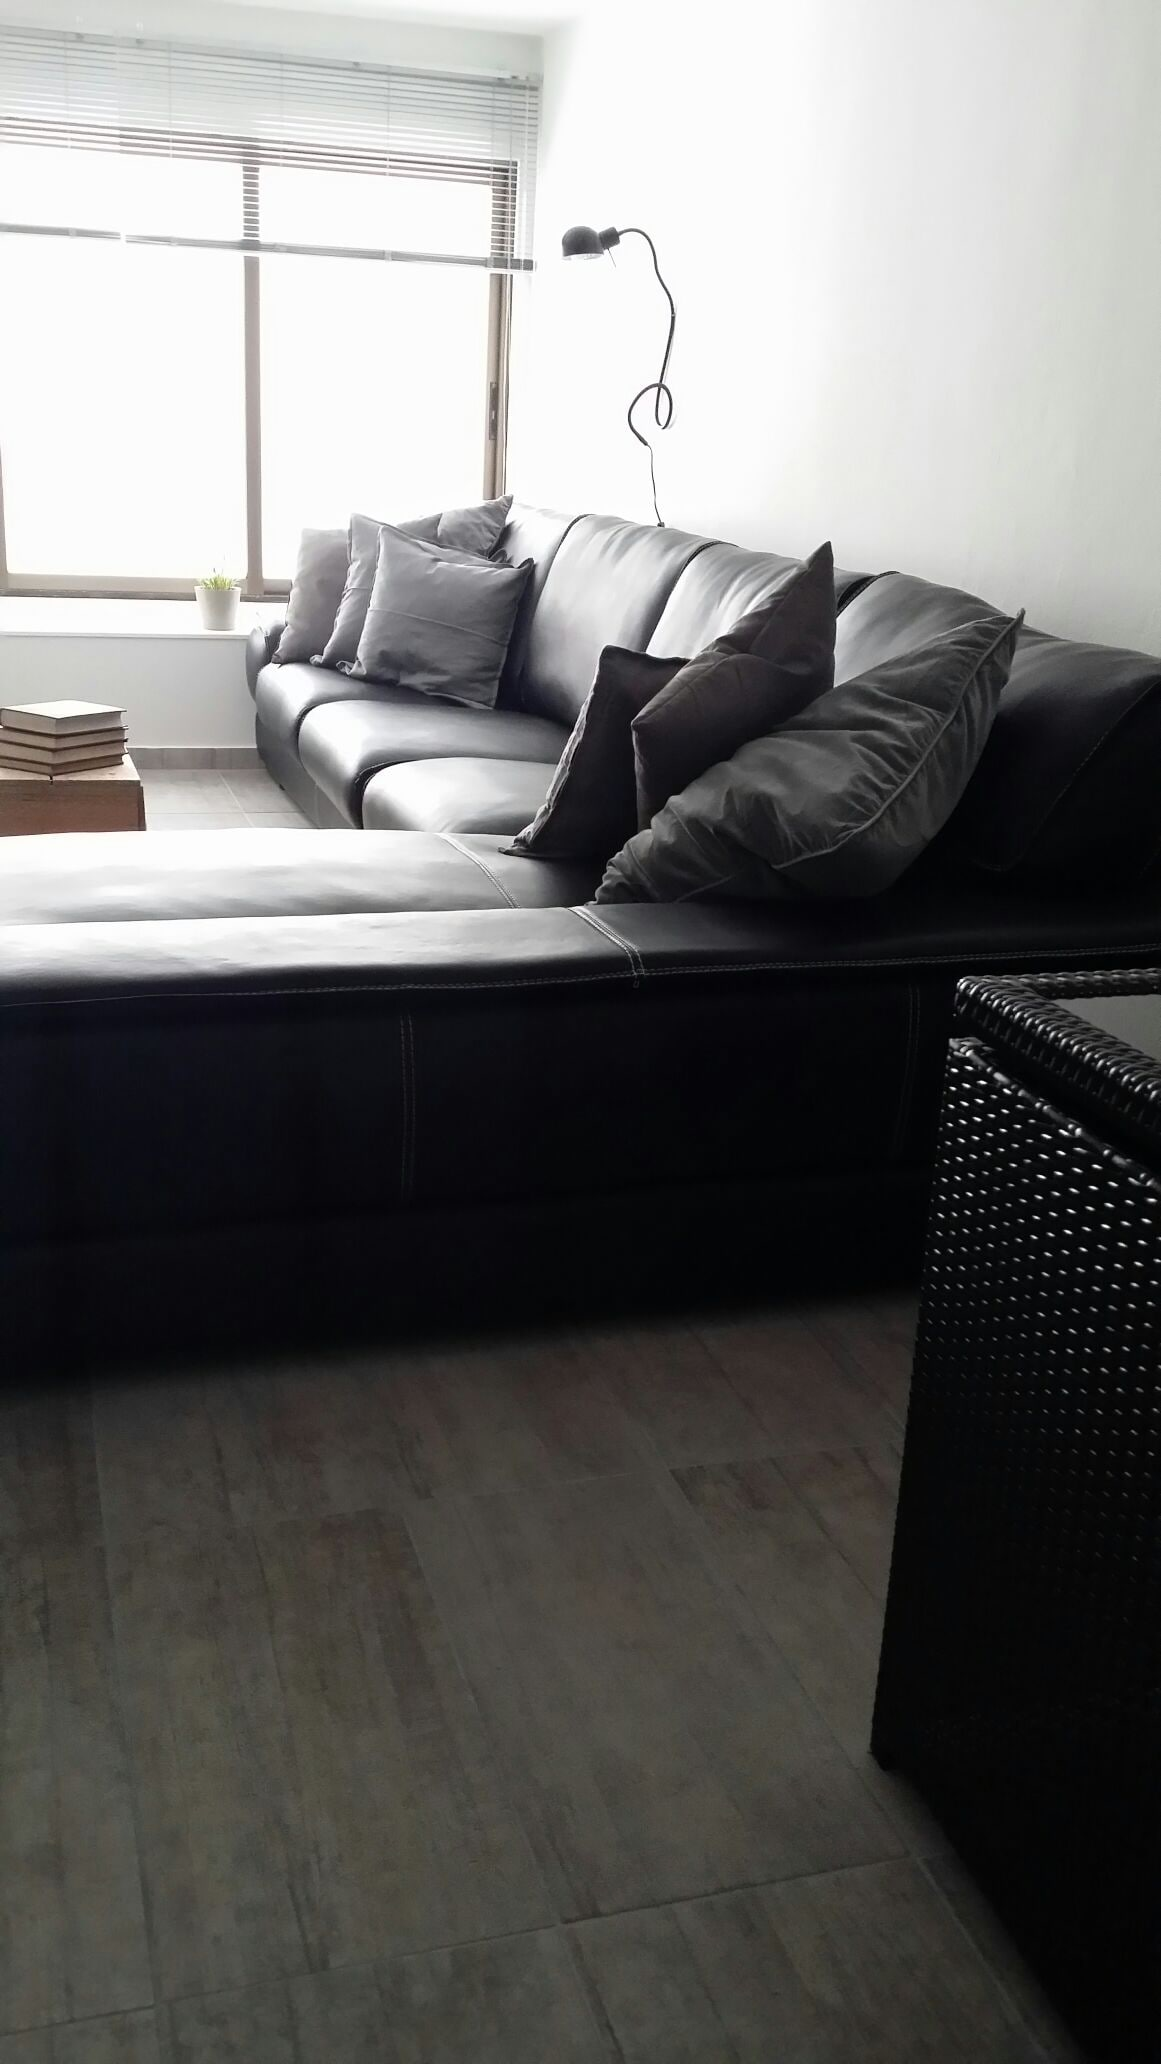 Lush, comfortable couch